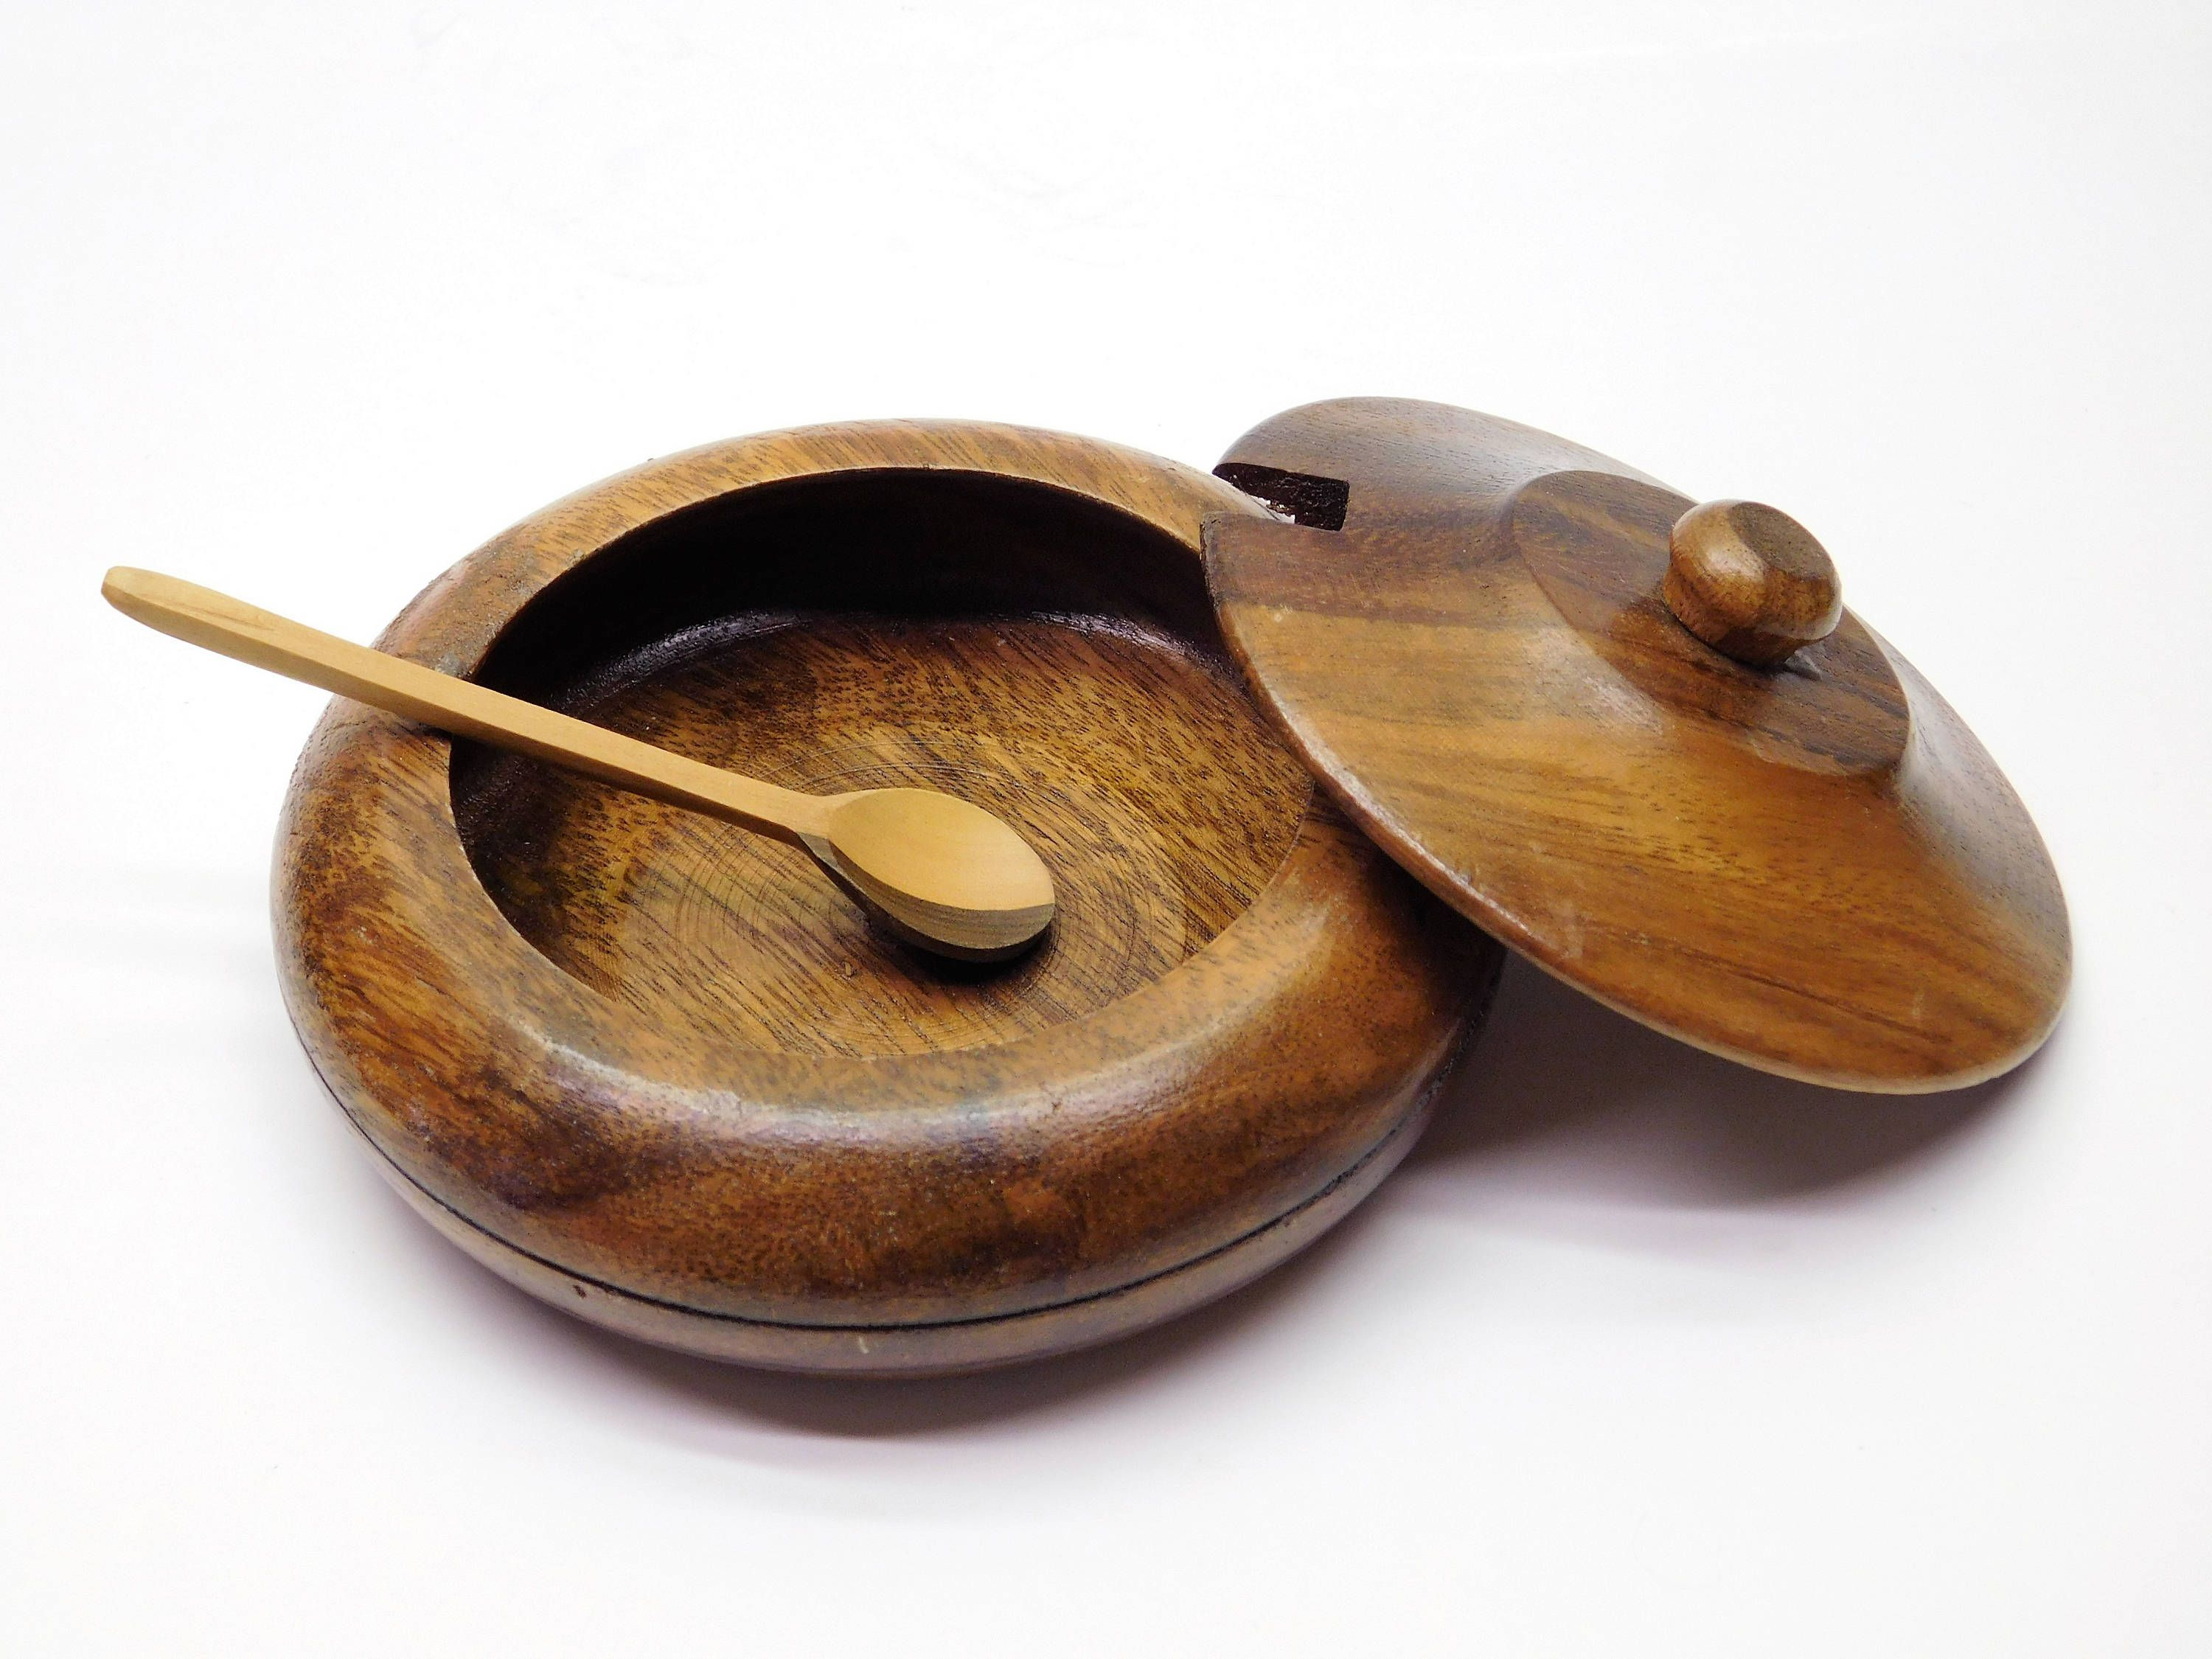 Handmade   Rusticity/® Wooden Sugar Bowl with Lid and Spoon Brass 5x4in